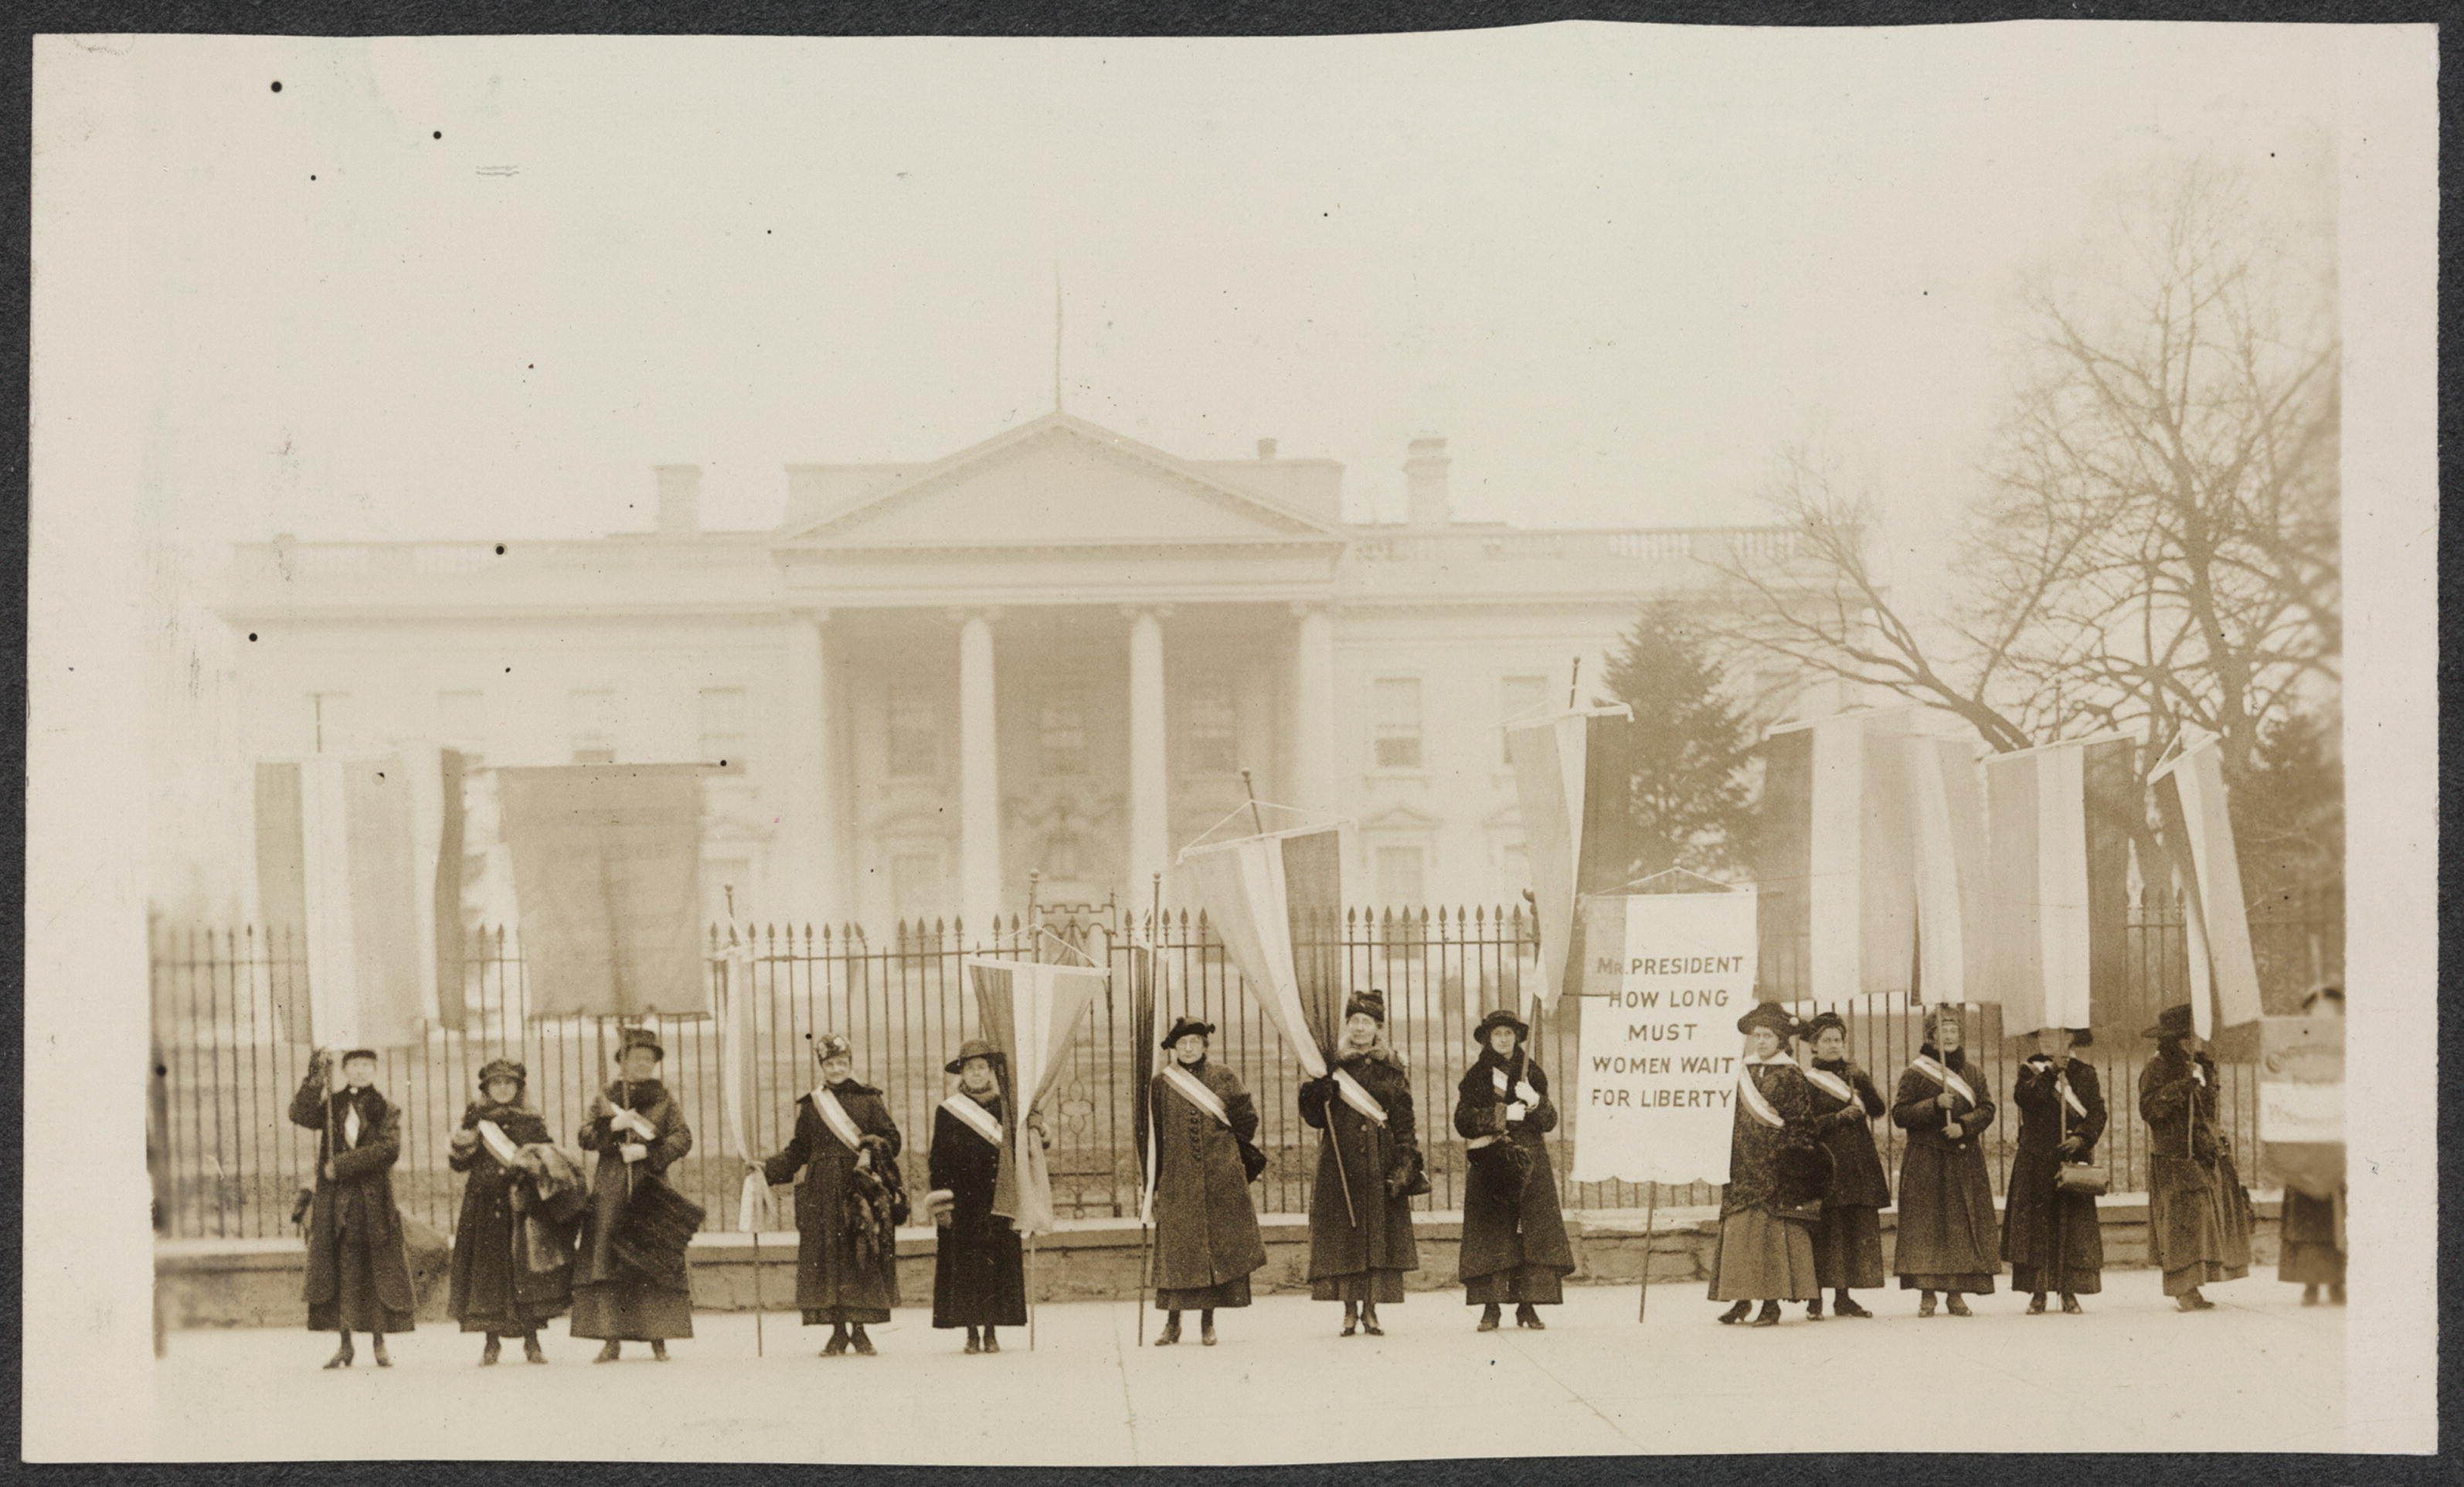 Members of the National Woman's Party stand in front of the White House to make a statement for women's suffrage. Library of Congress.